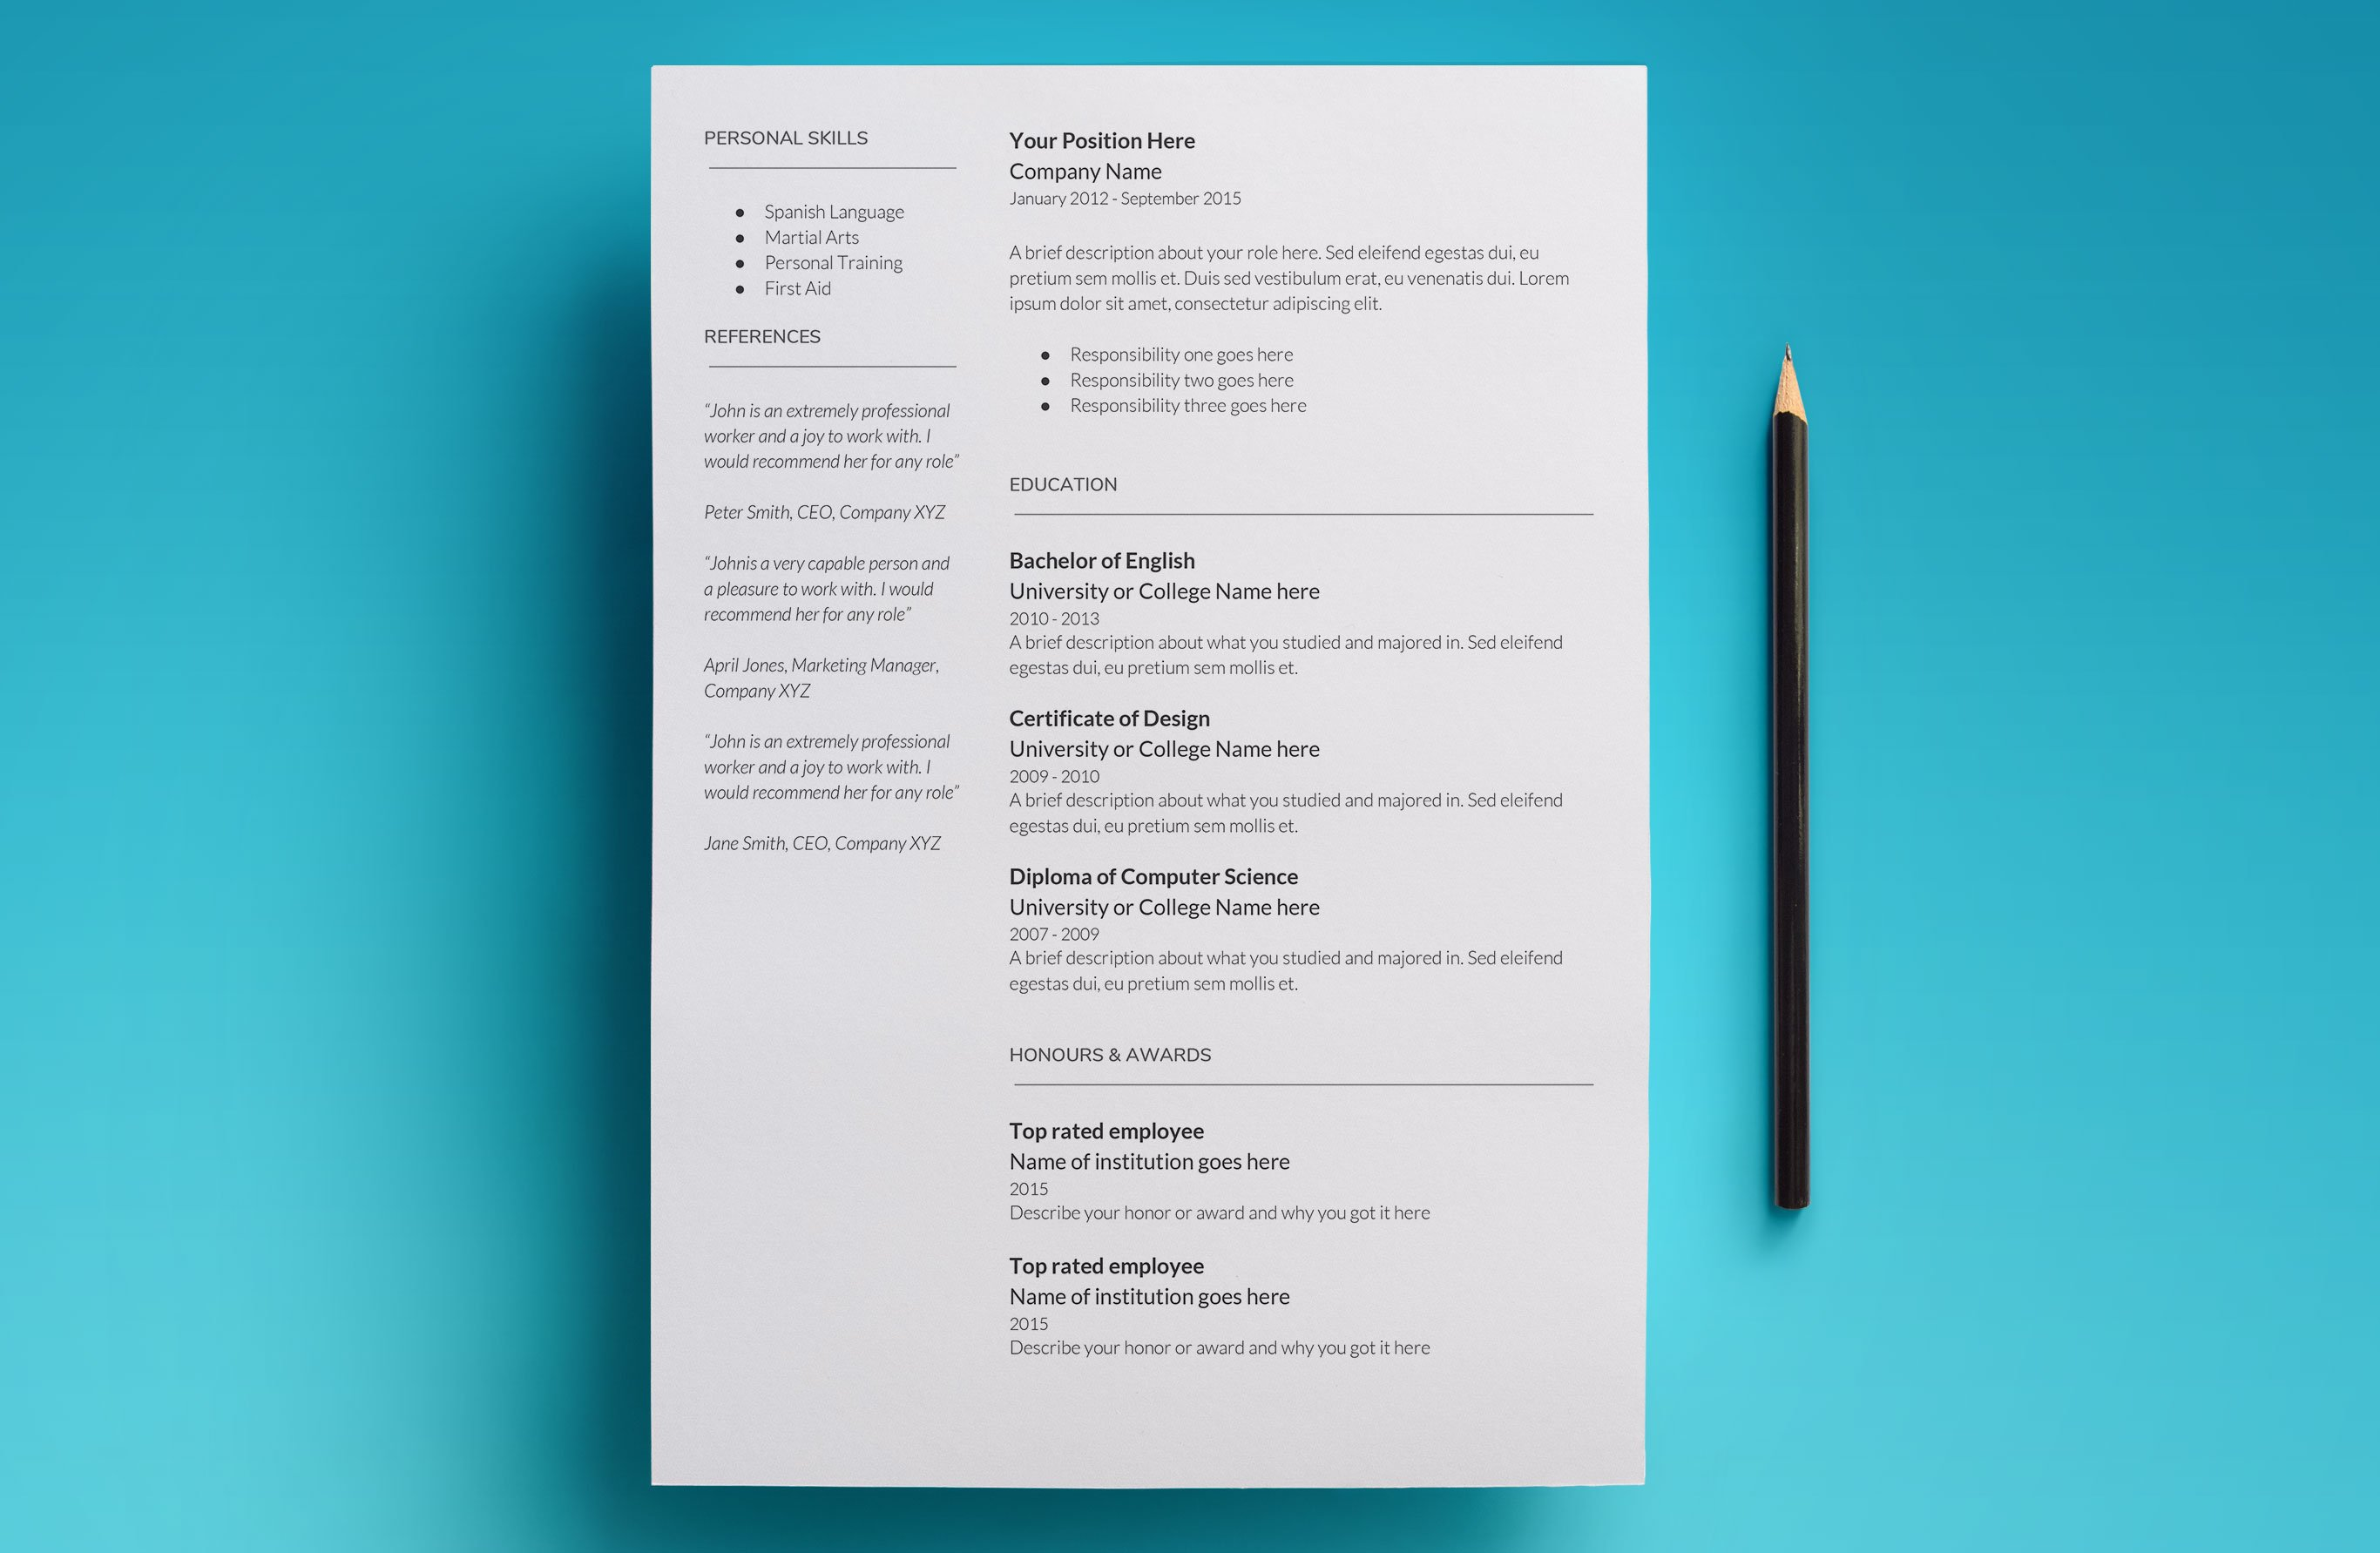 Promote Yourself With This Proven Professional Resume Template For Google Docs Formatted In A Way To Get You Results Its Been Downloaded And Used